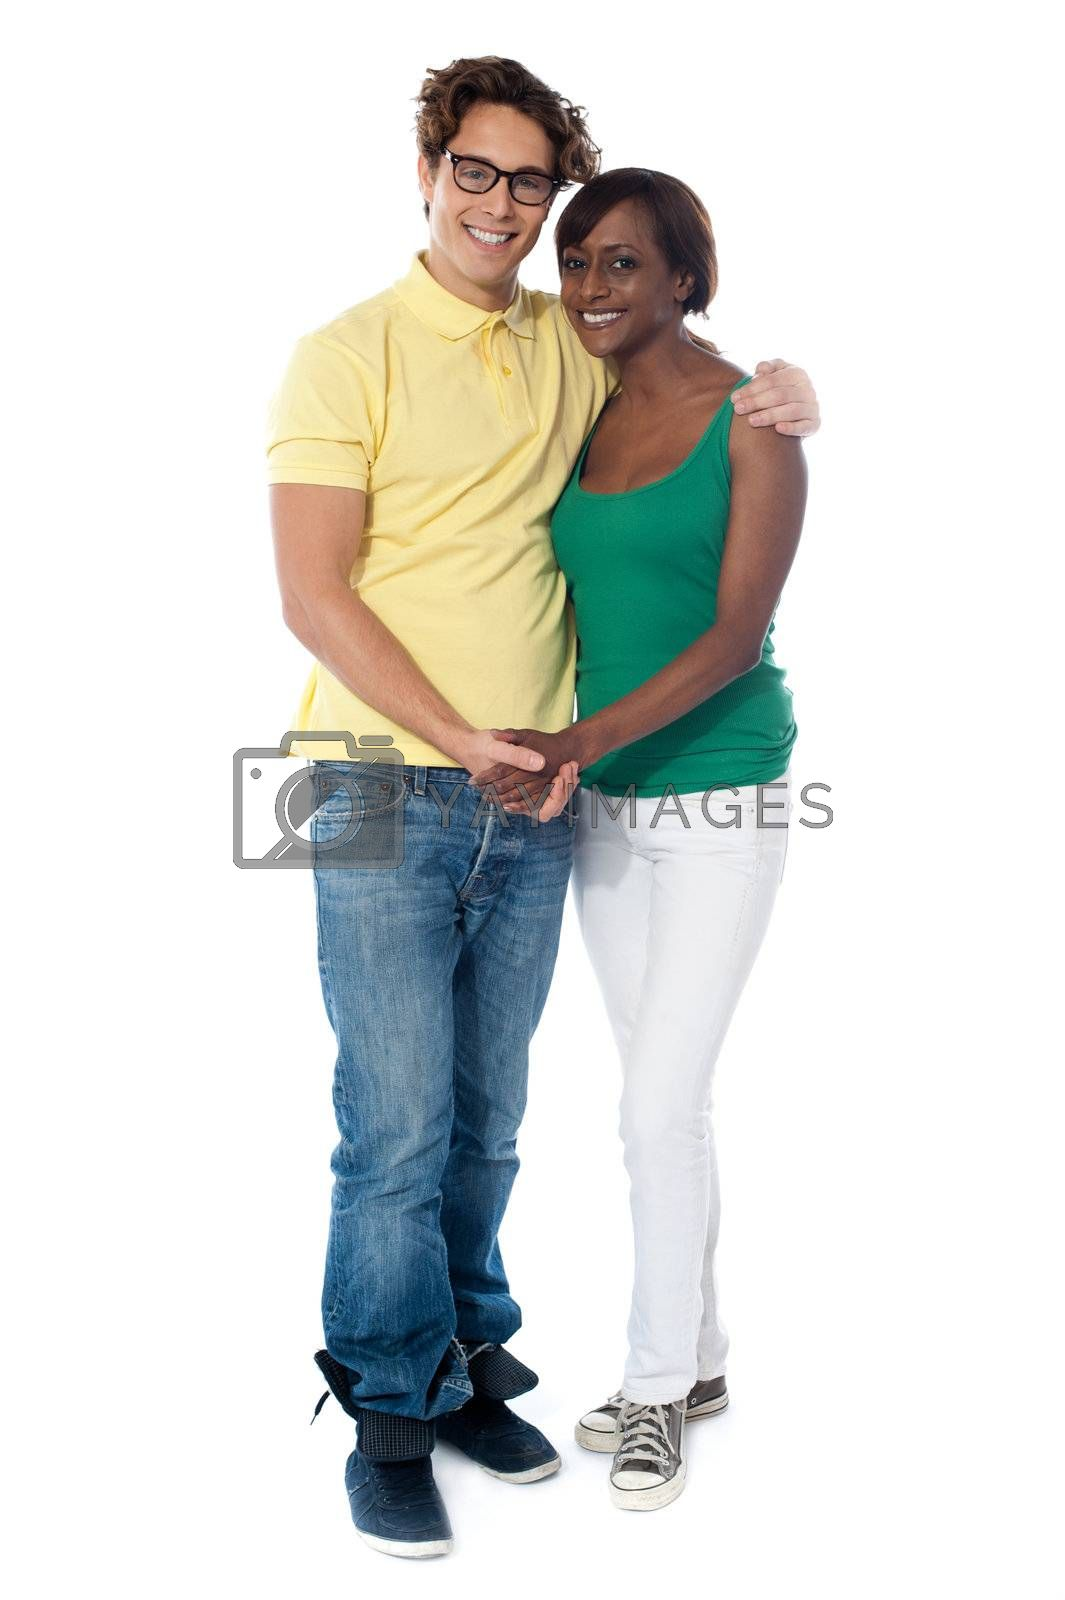 Couples hugging and holding hands standing over white background